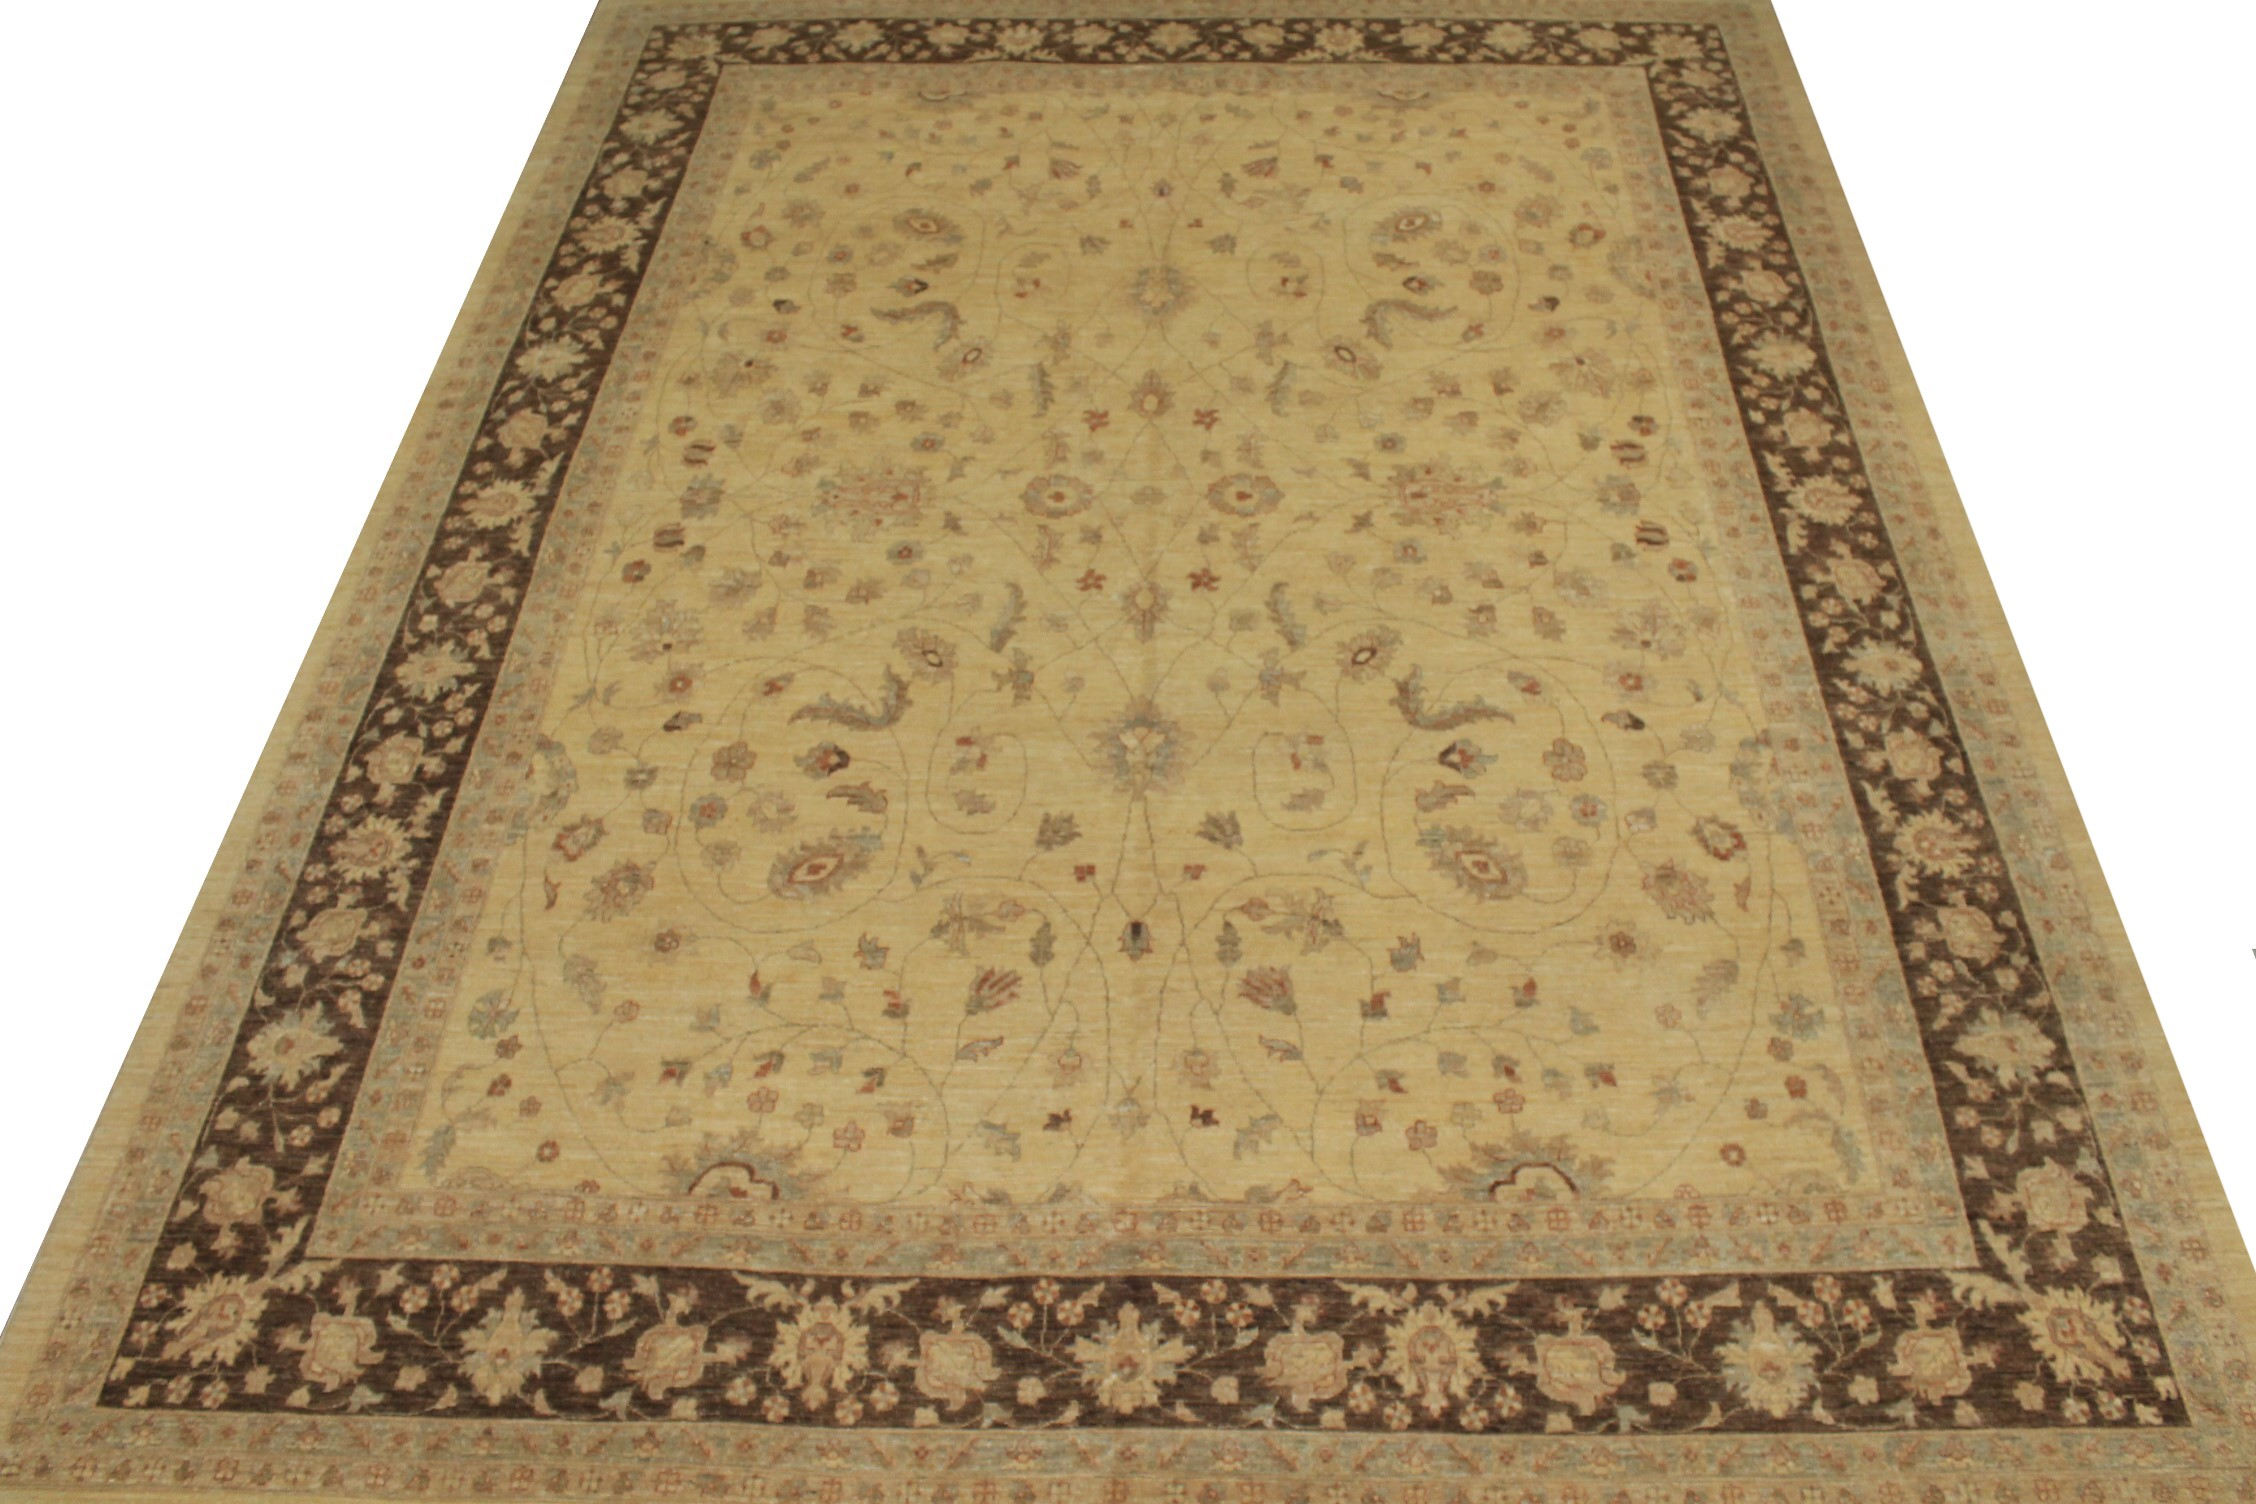 OVERSIZE Peshawar Hand Knotted Wool Area Rug - MR11192